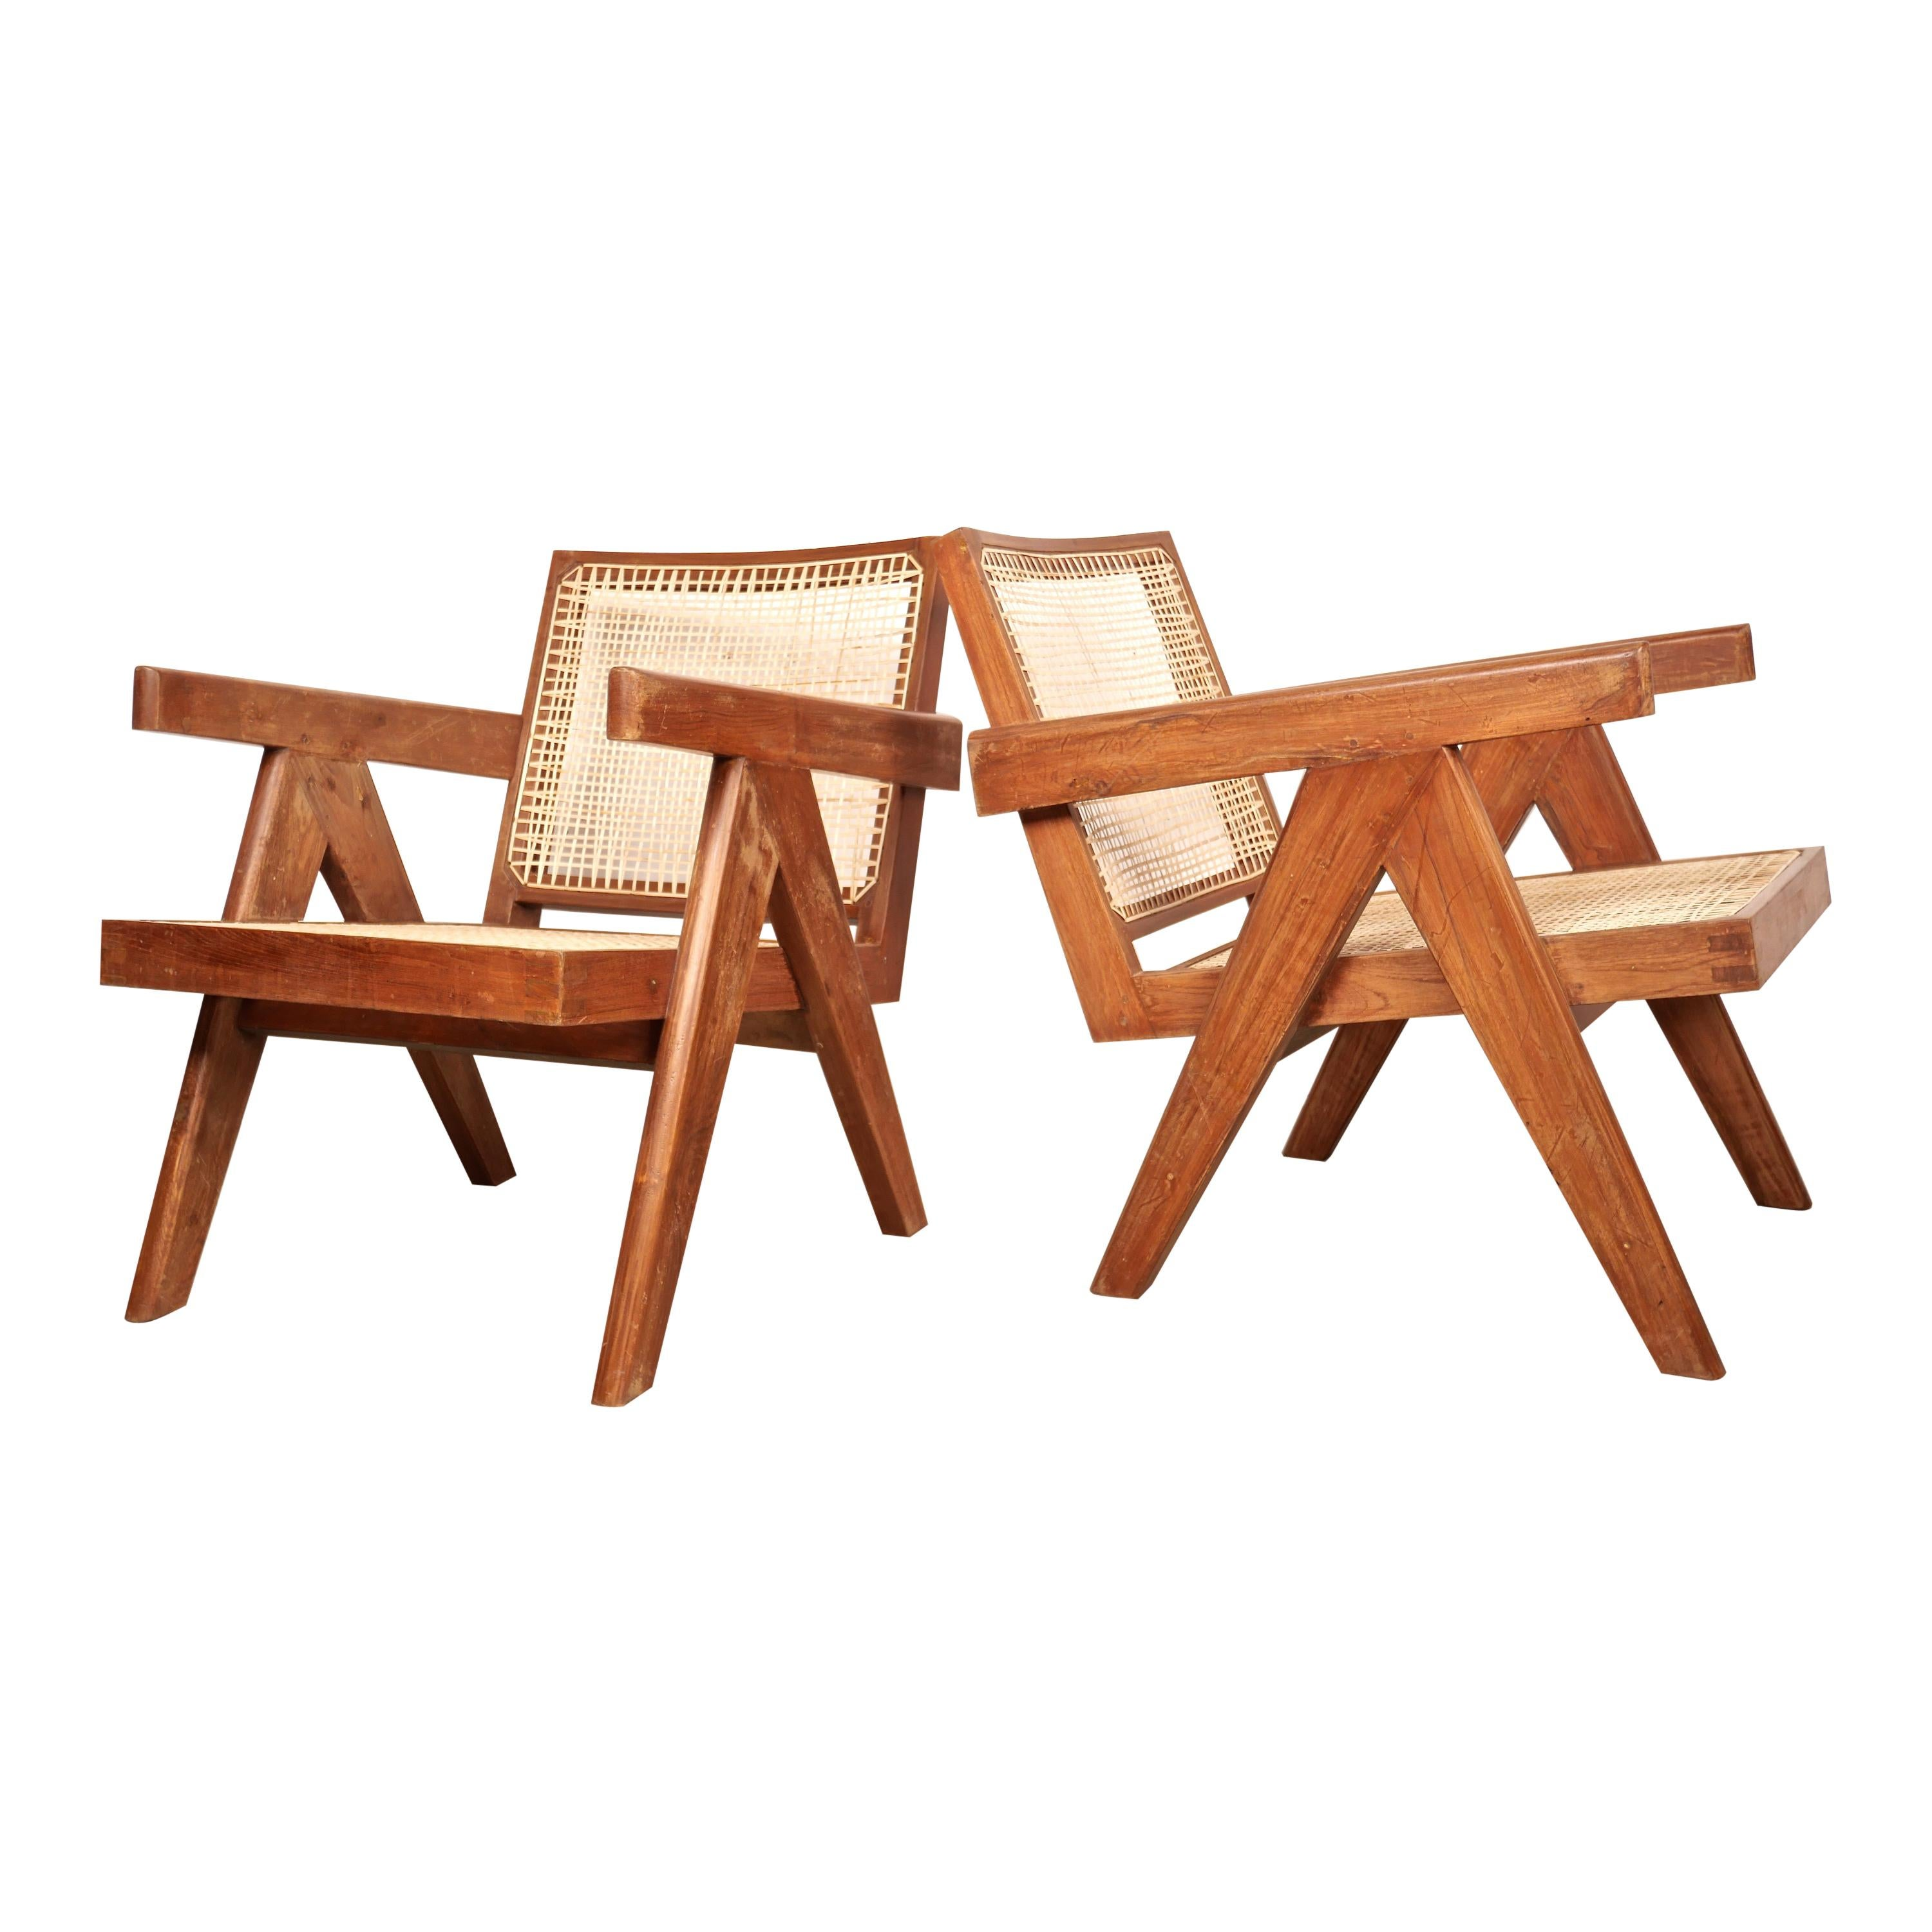 """Pierre Jeanneret """"Easy Armchair"""" in Solid Teak and Cane, Chandigarh, India, 1955"""